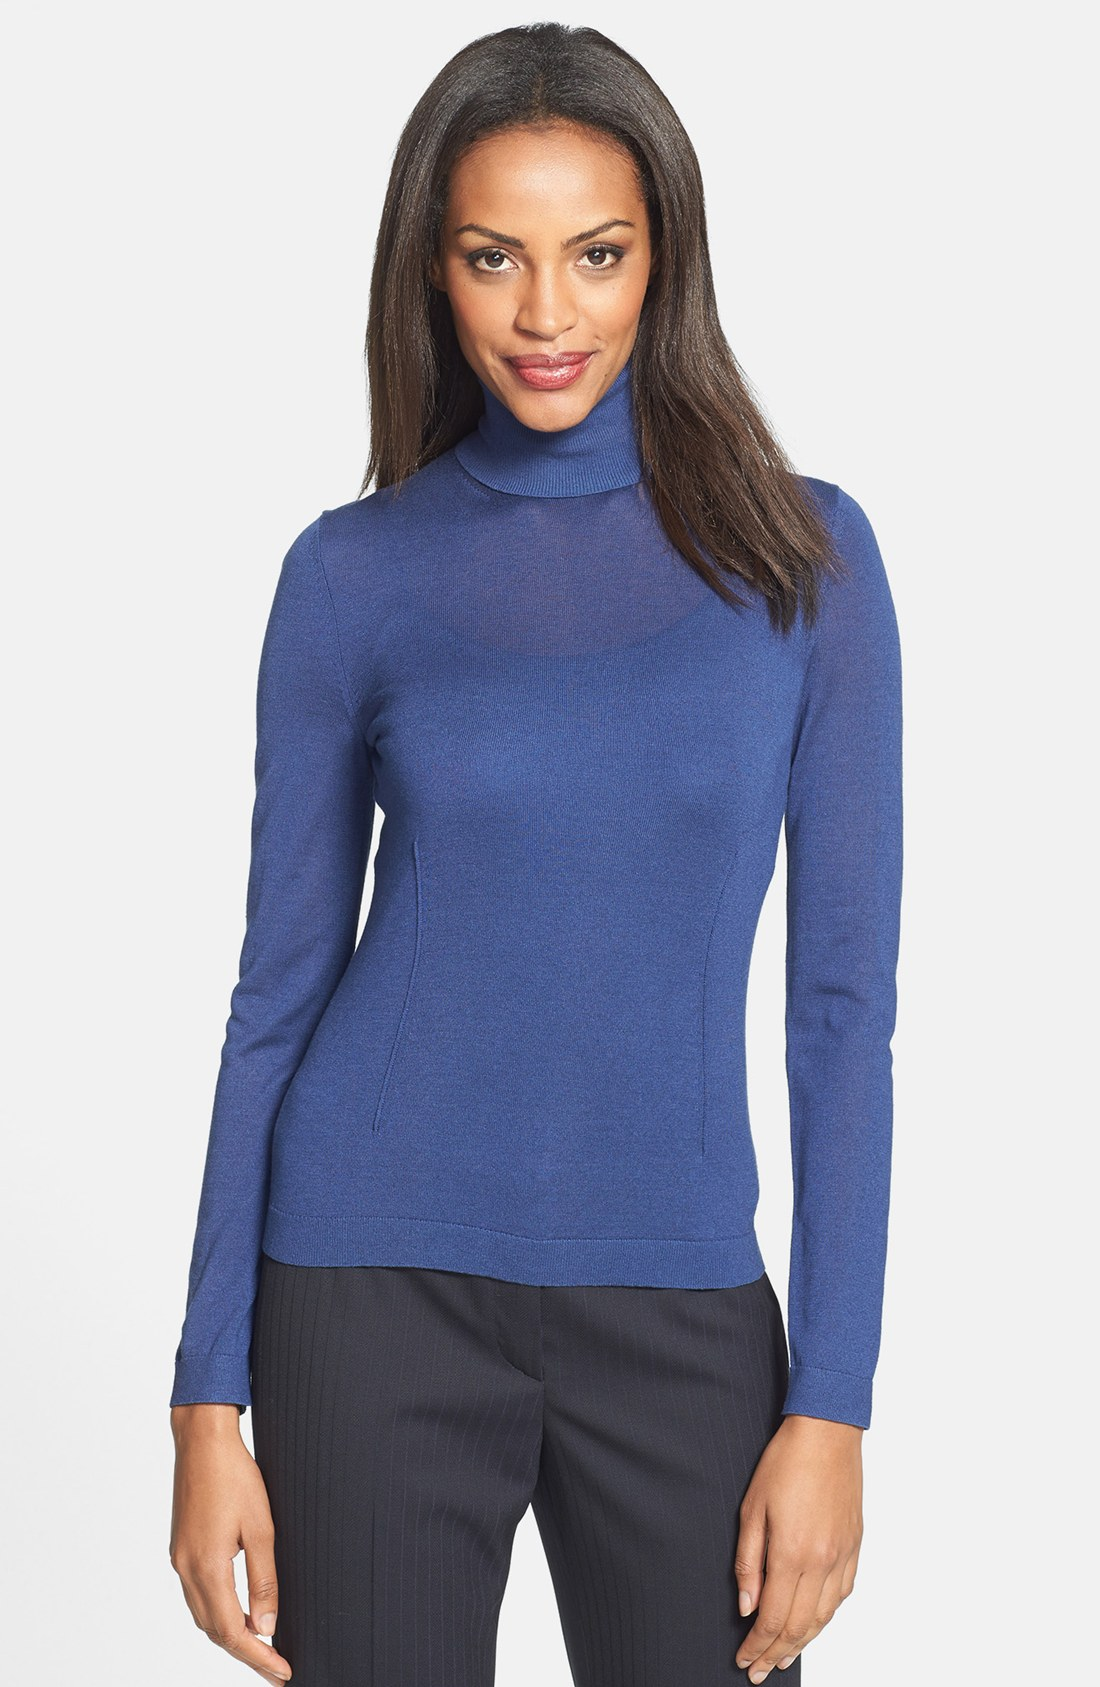 Enjoy turtleneck sweaters in a variety of fits and styles from Banana Republic. Family turtleneck sweater selections are available in ribbed turtleneck styles, mock turtleneck and even turtleneck .